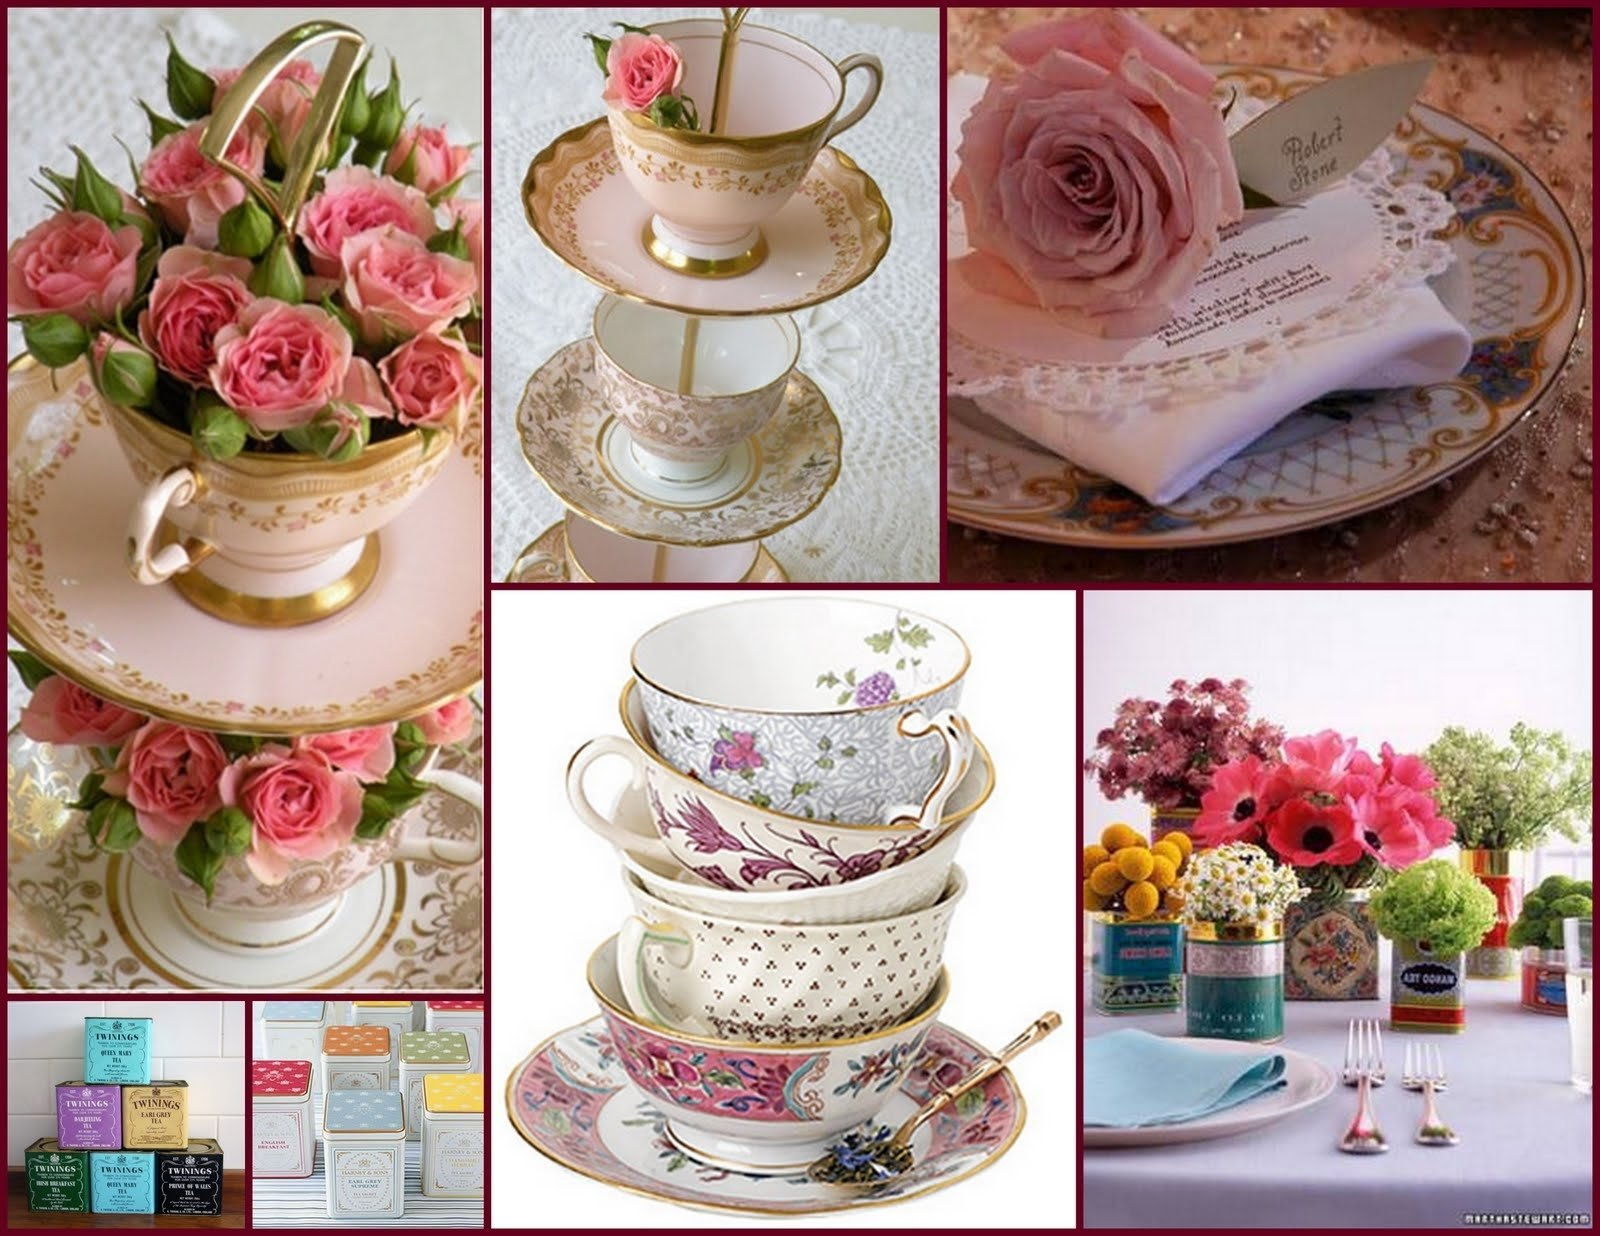 10 Beautiful Tea Party Bridal Shower Ideas tea party bridal shower layout amazing tea party bridal shower ideas 2020